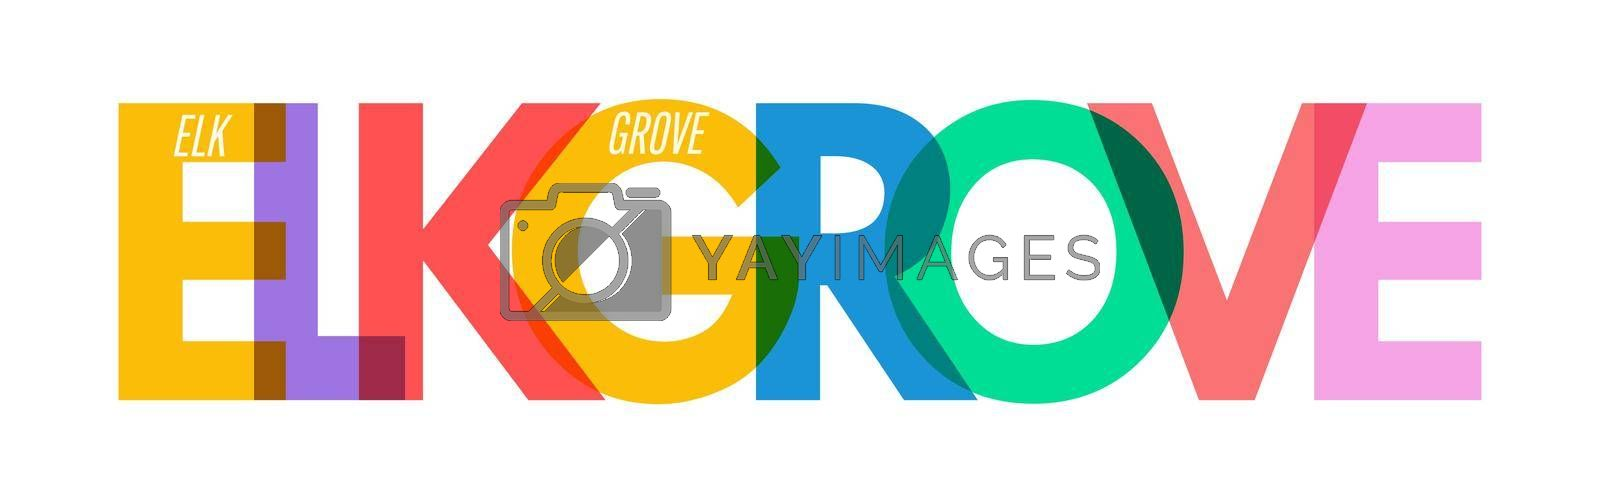 ELK GROVE. The name of the city on a white background. Vector design template for poster, postcard, banner. Vector illustration.